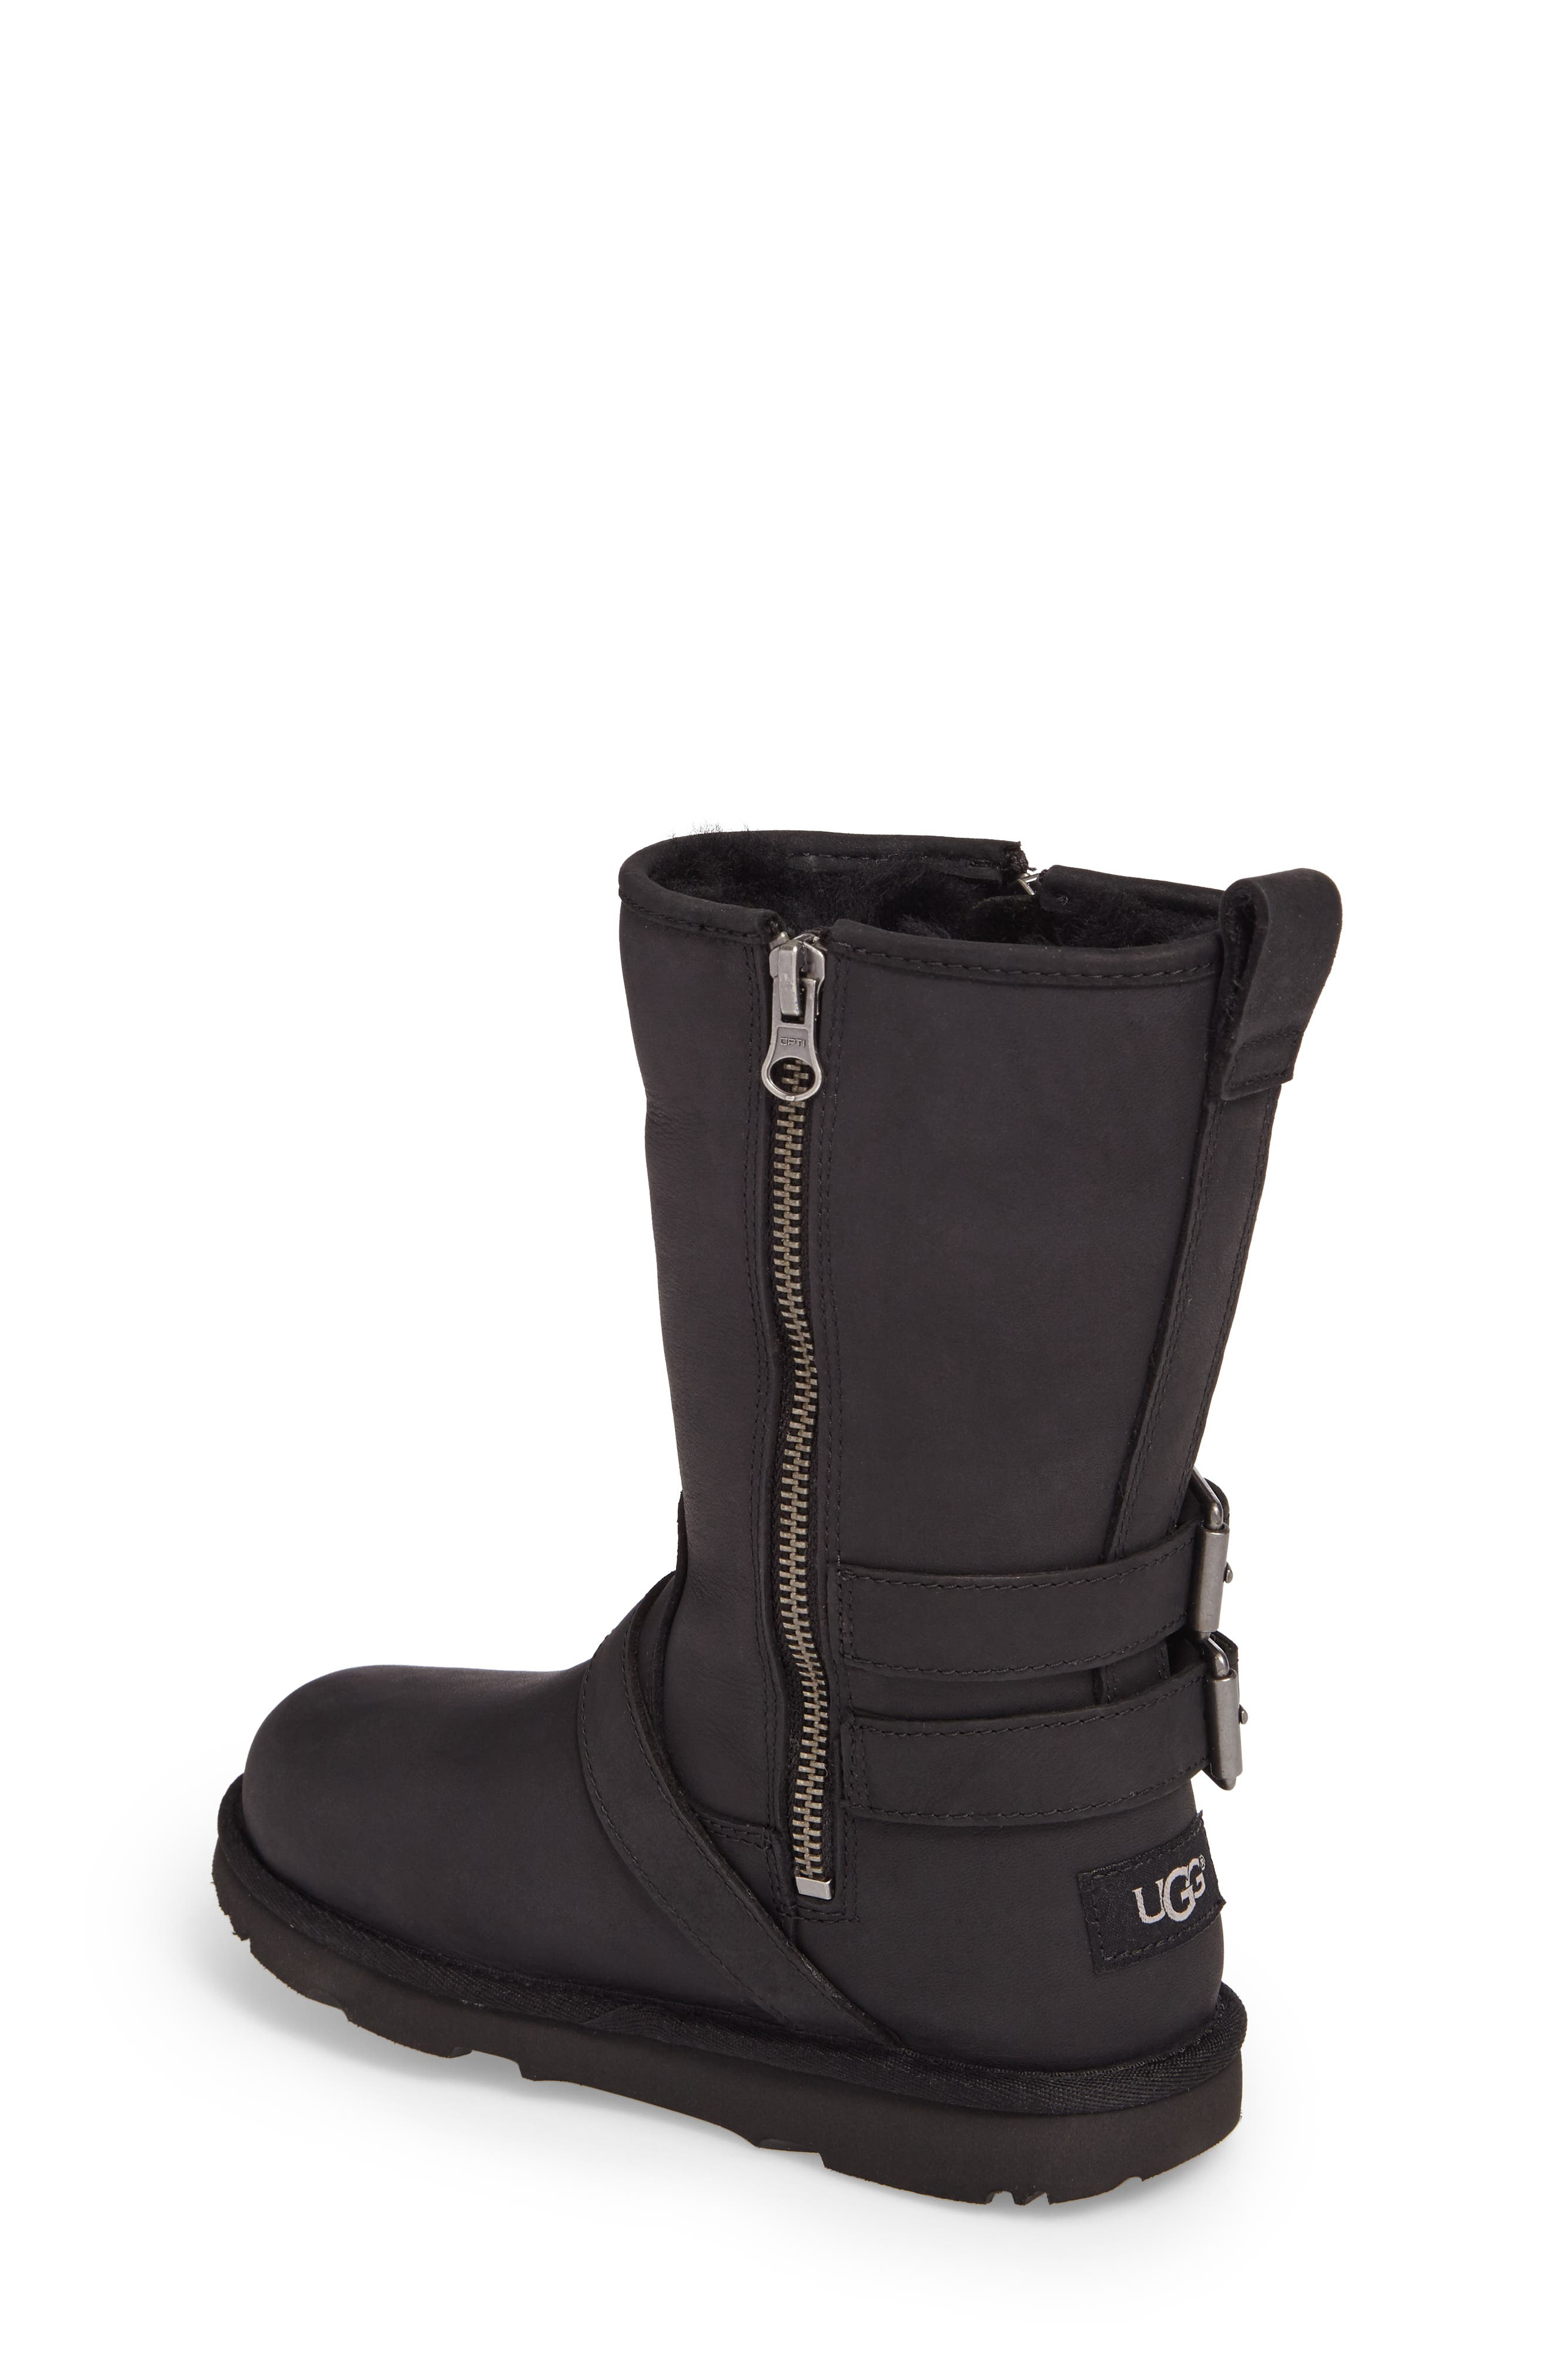 Kaila Genuine Shearling Buckle Strap Boot,                             Alternate thumbnail 2, color,                             001